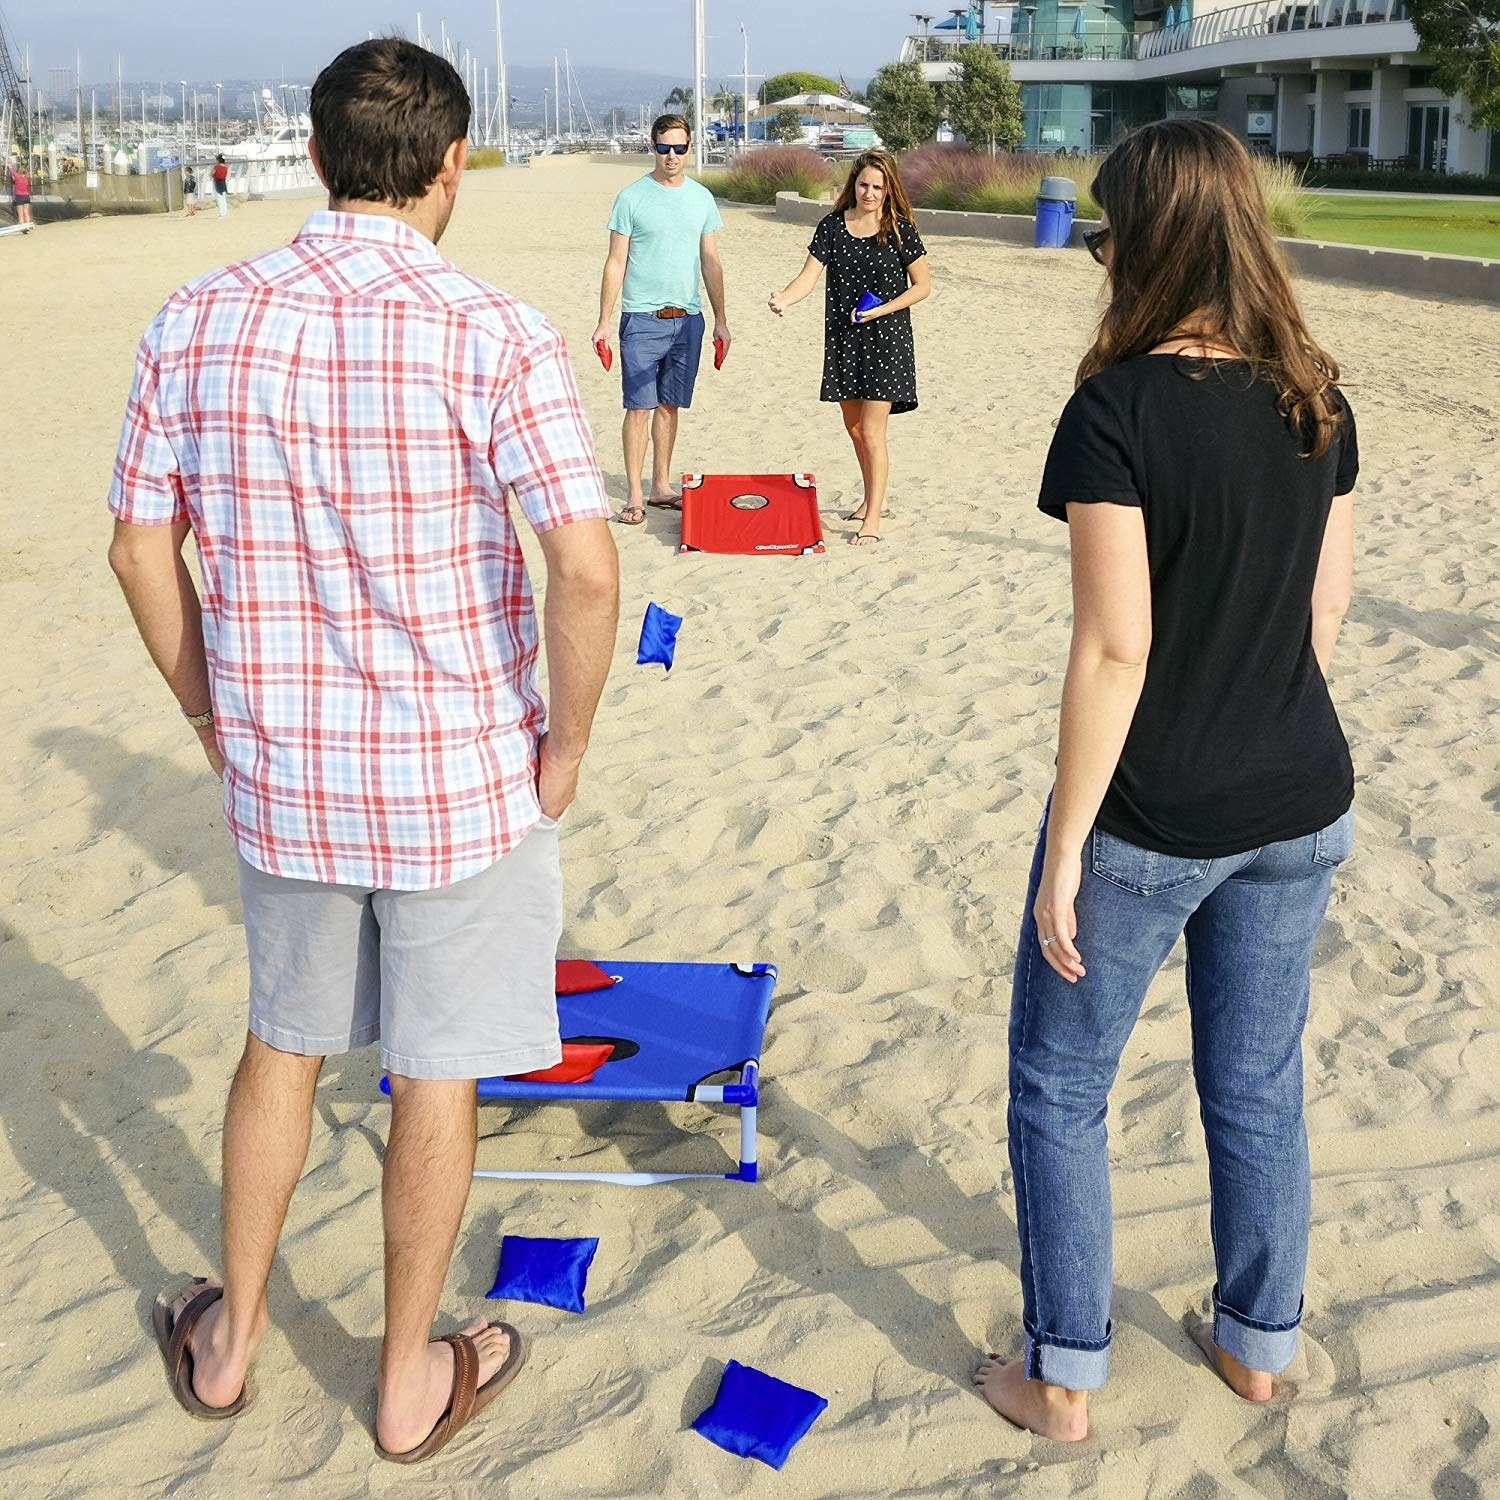 four people playing cornhole at the beach